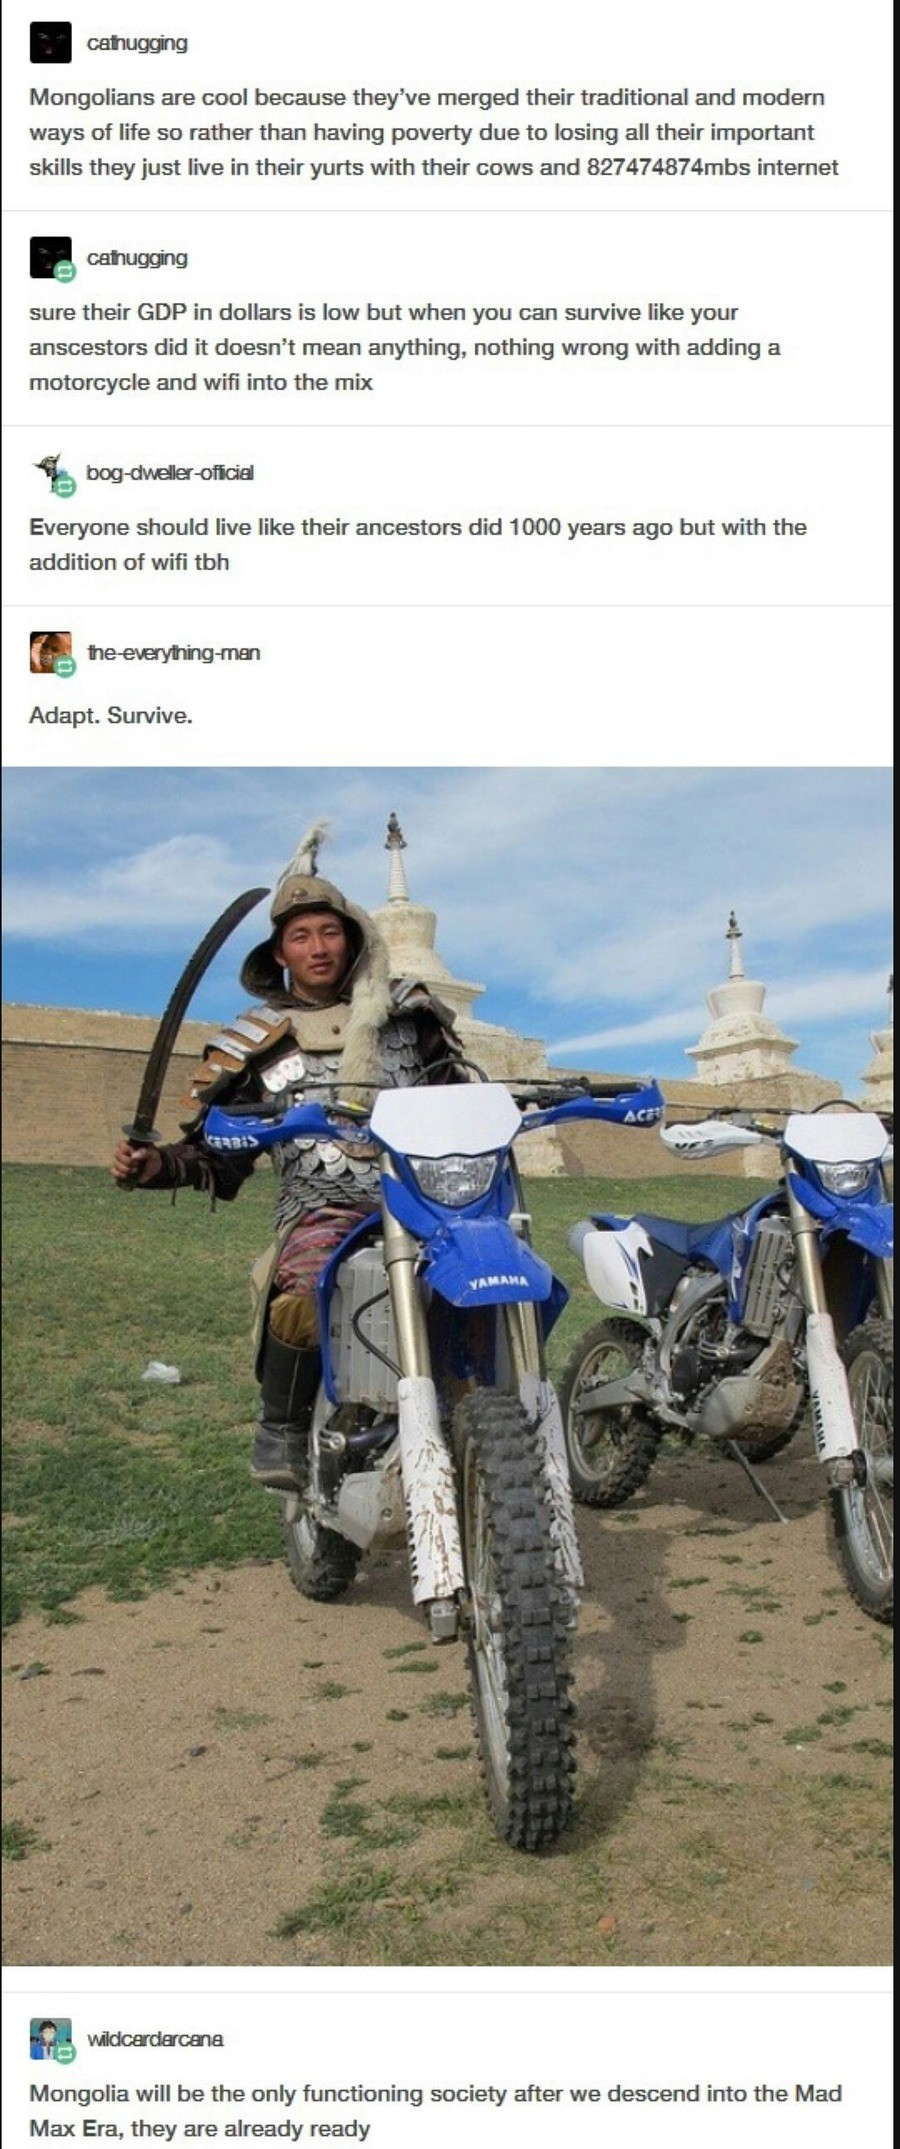 Mongolia. .. Everybody wants to live like their ancestors, but no one wants to die like them